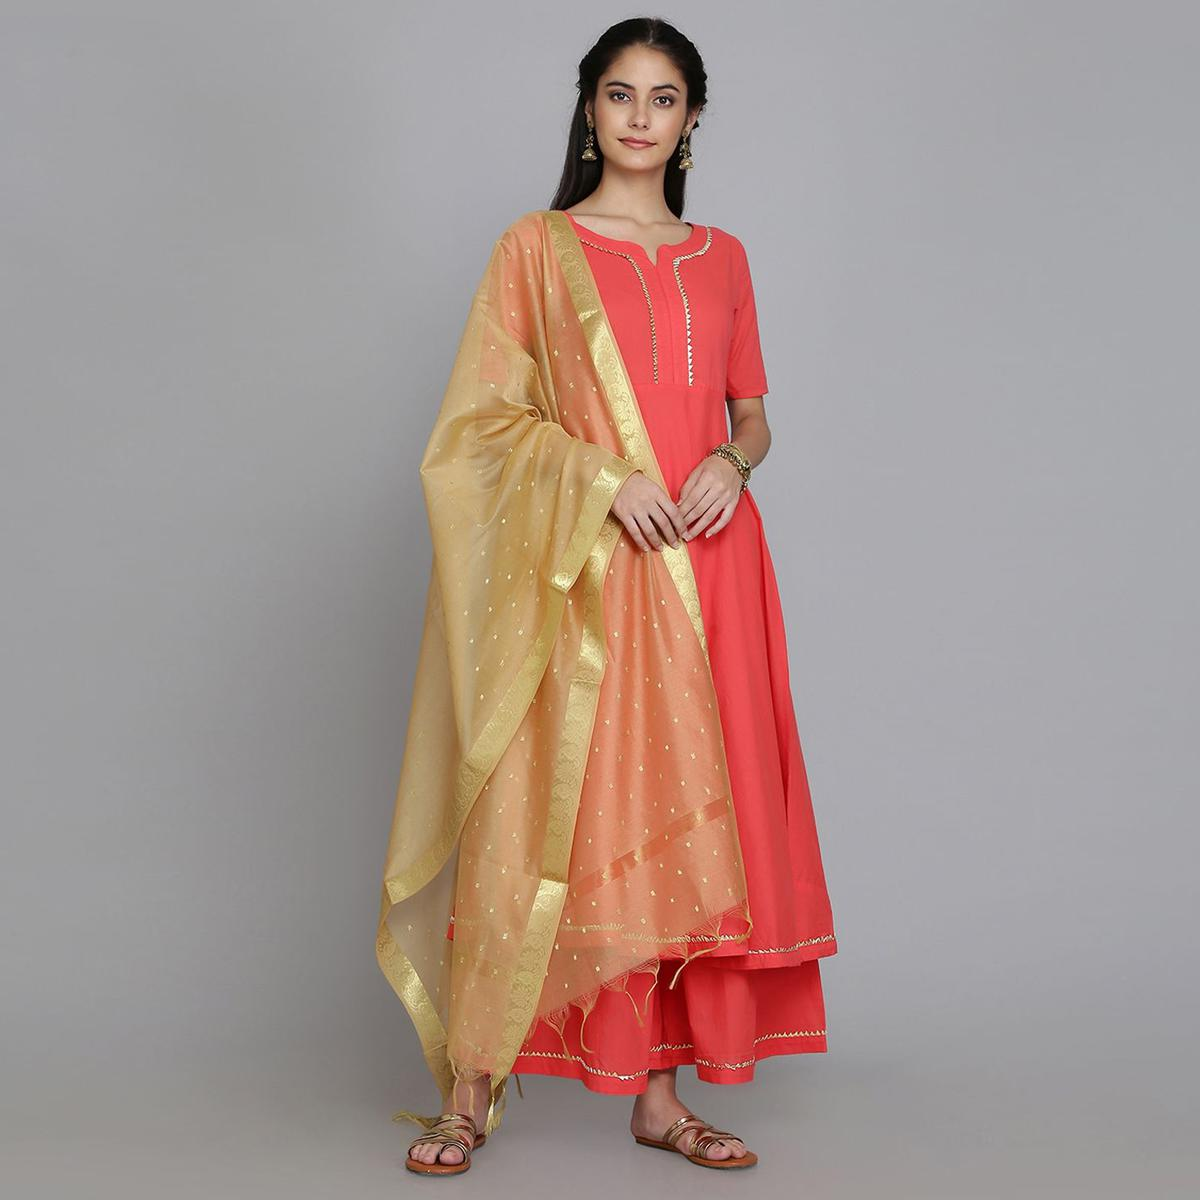 Radiant Coral Red Colored Casual Wear Embellishments Cambric Cotton A-line Kurti-Palazzo Set With Dupatta